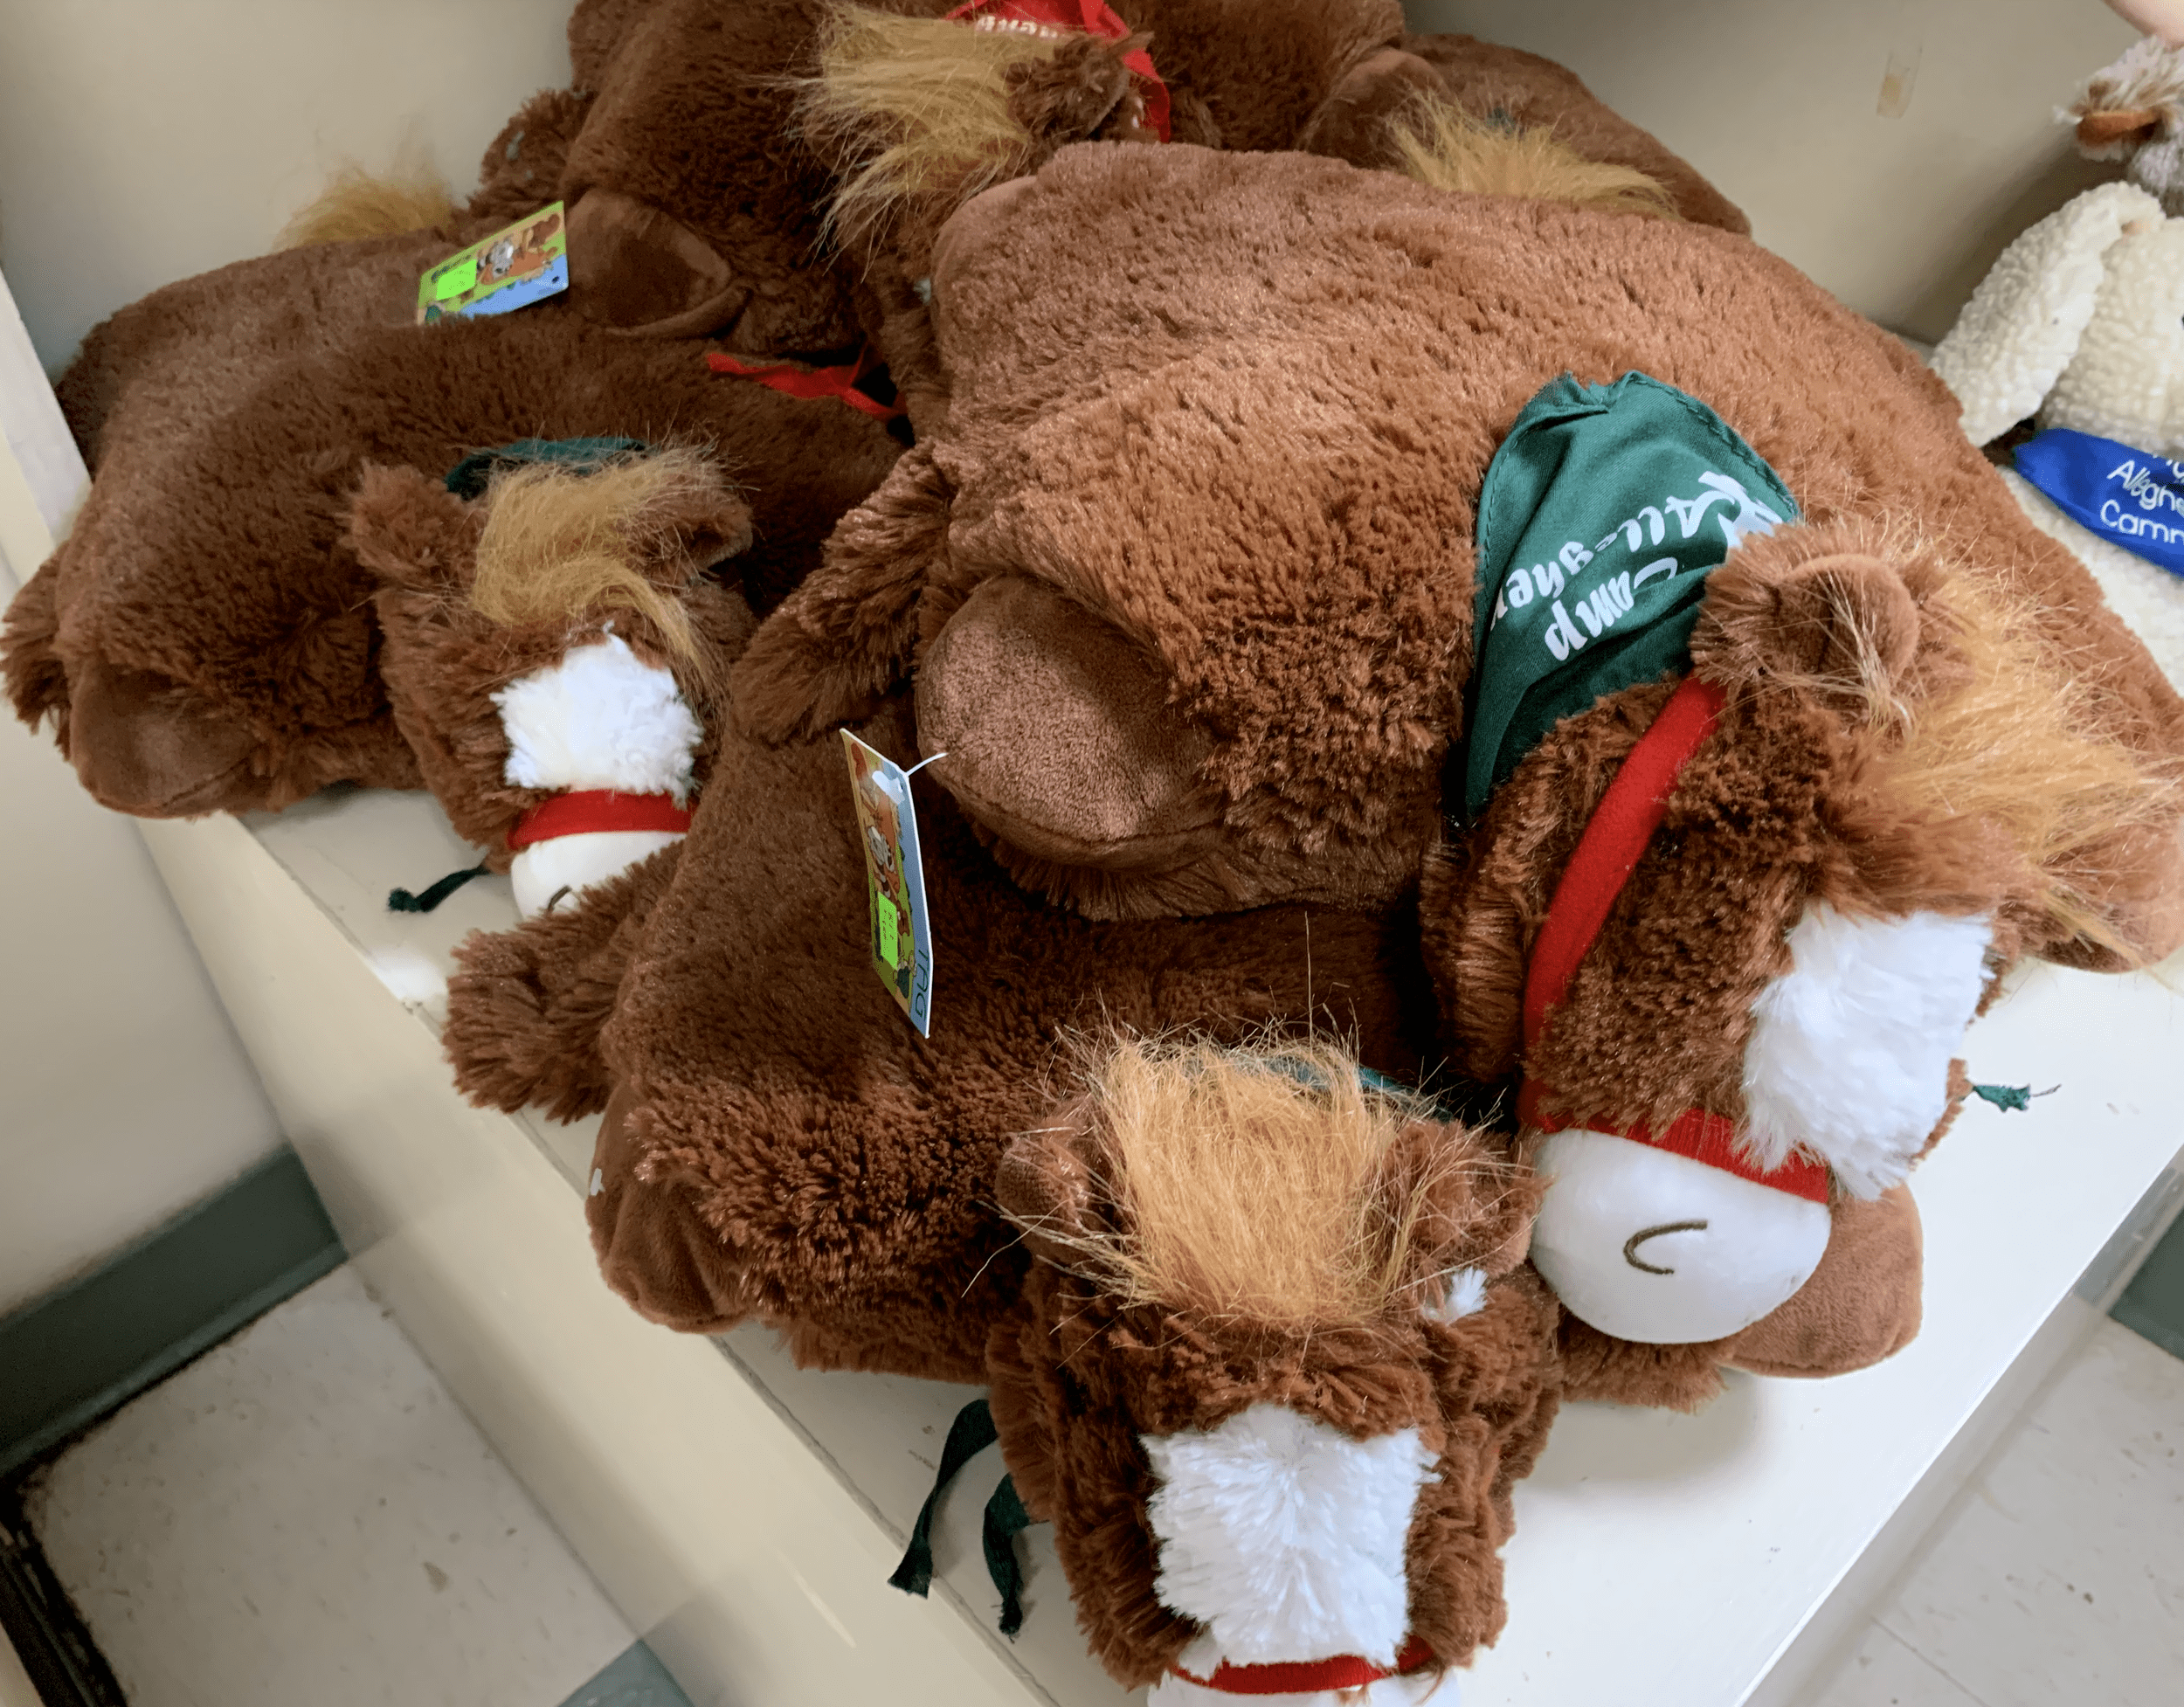 camp allegheny camp allegheny stuffed horse pillow pet retreat and christian summer camp